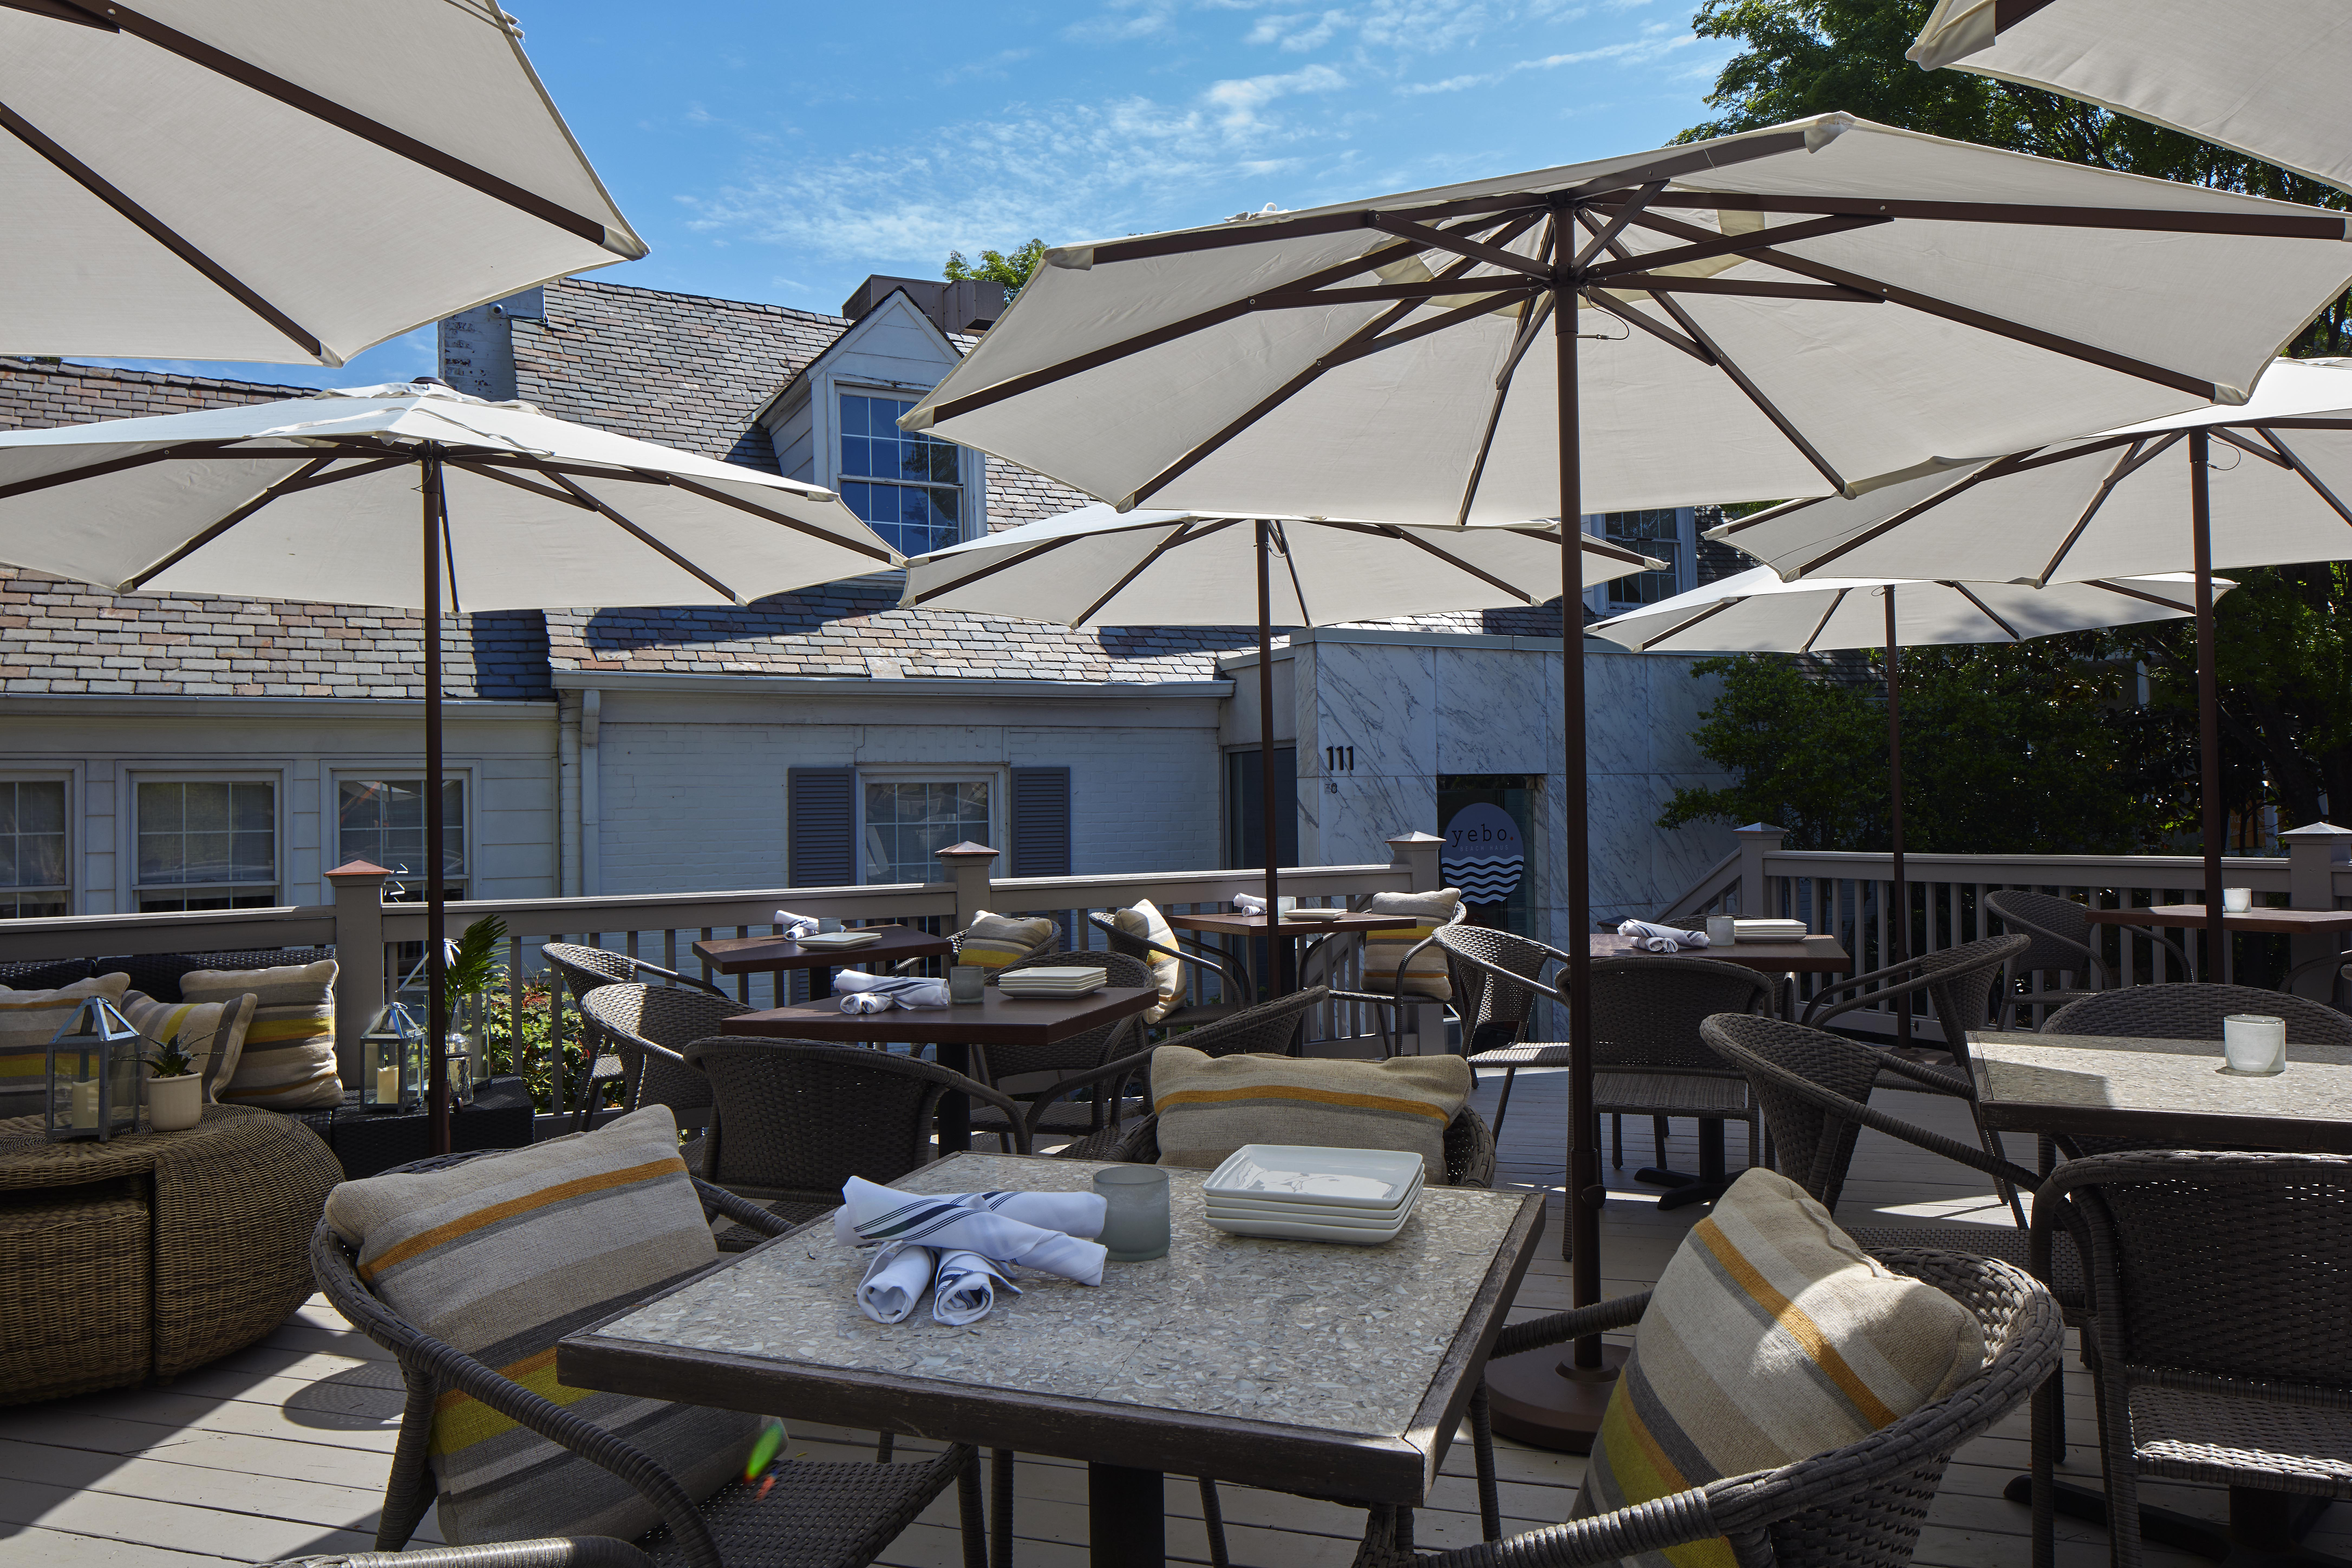 The outdoor patio at the current location of Yebo Beach Haus with tables and umbrellas